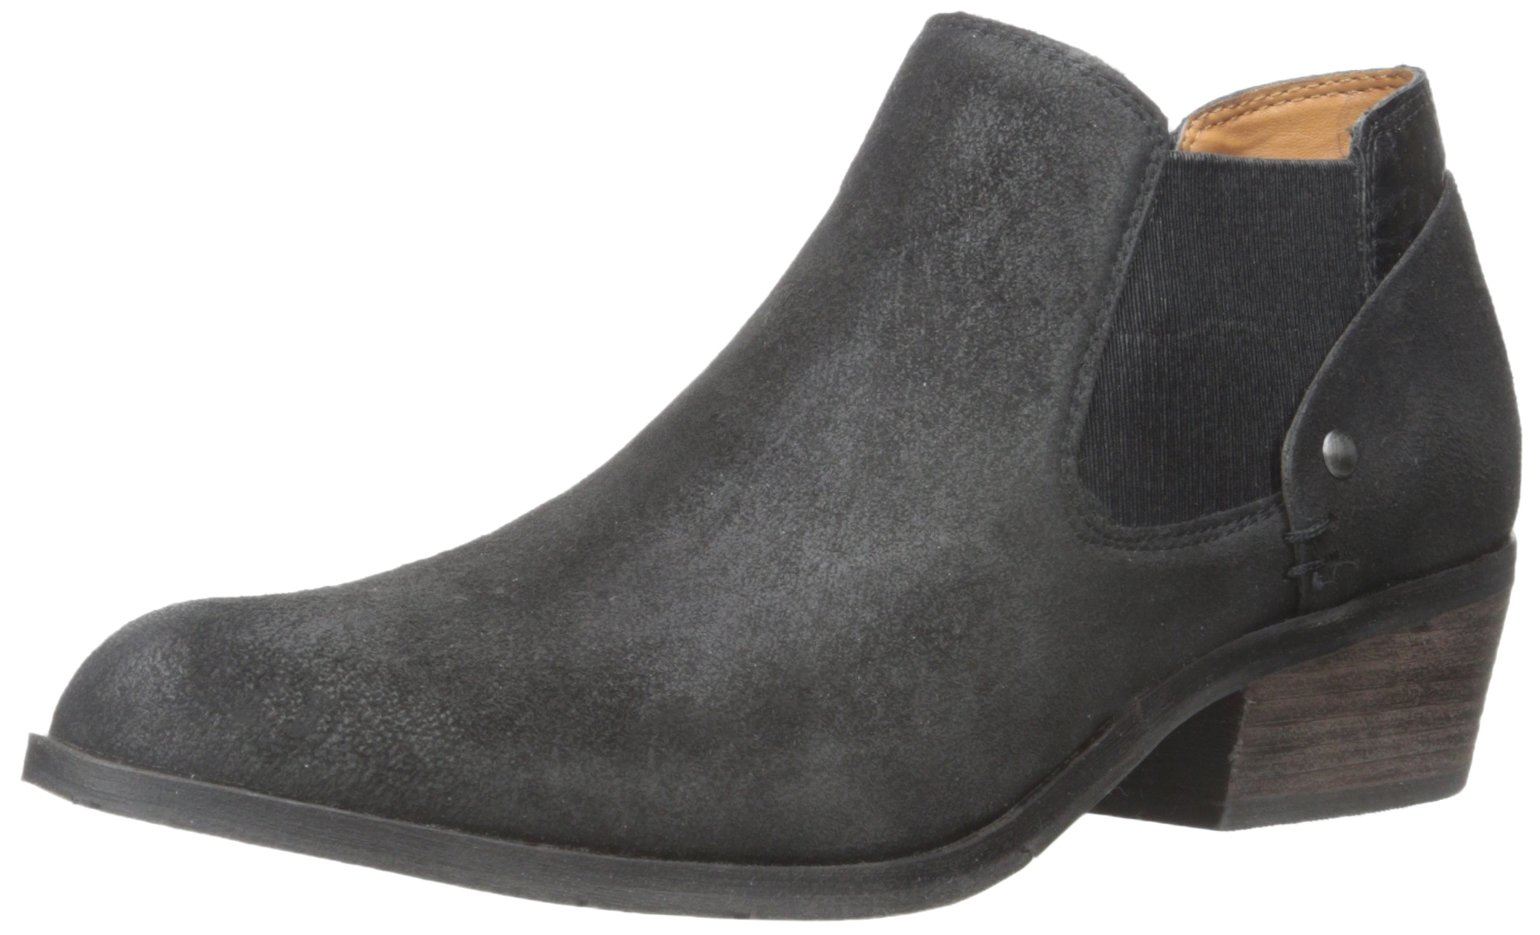 DV by Dolce Vita Women's Caprice Bootie, Black Leather, 8 M US